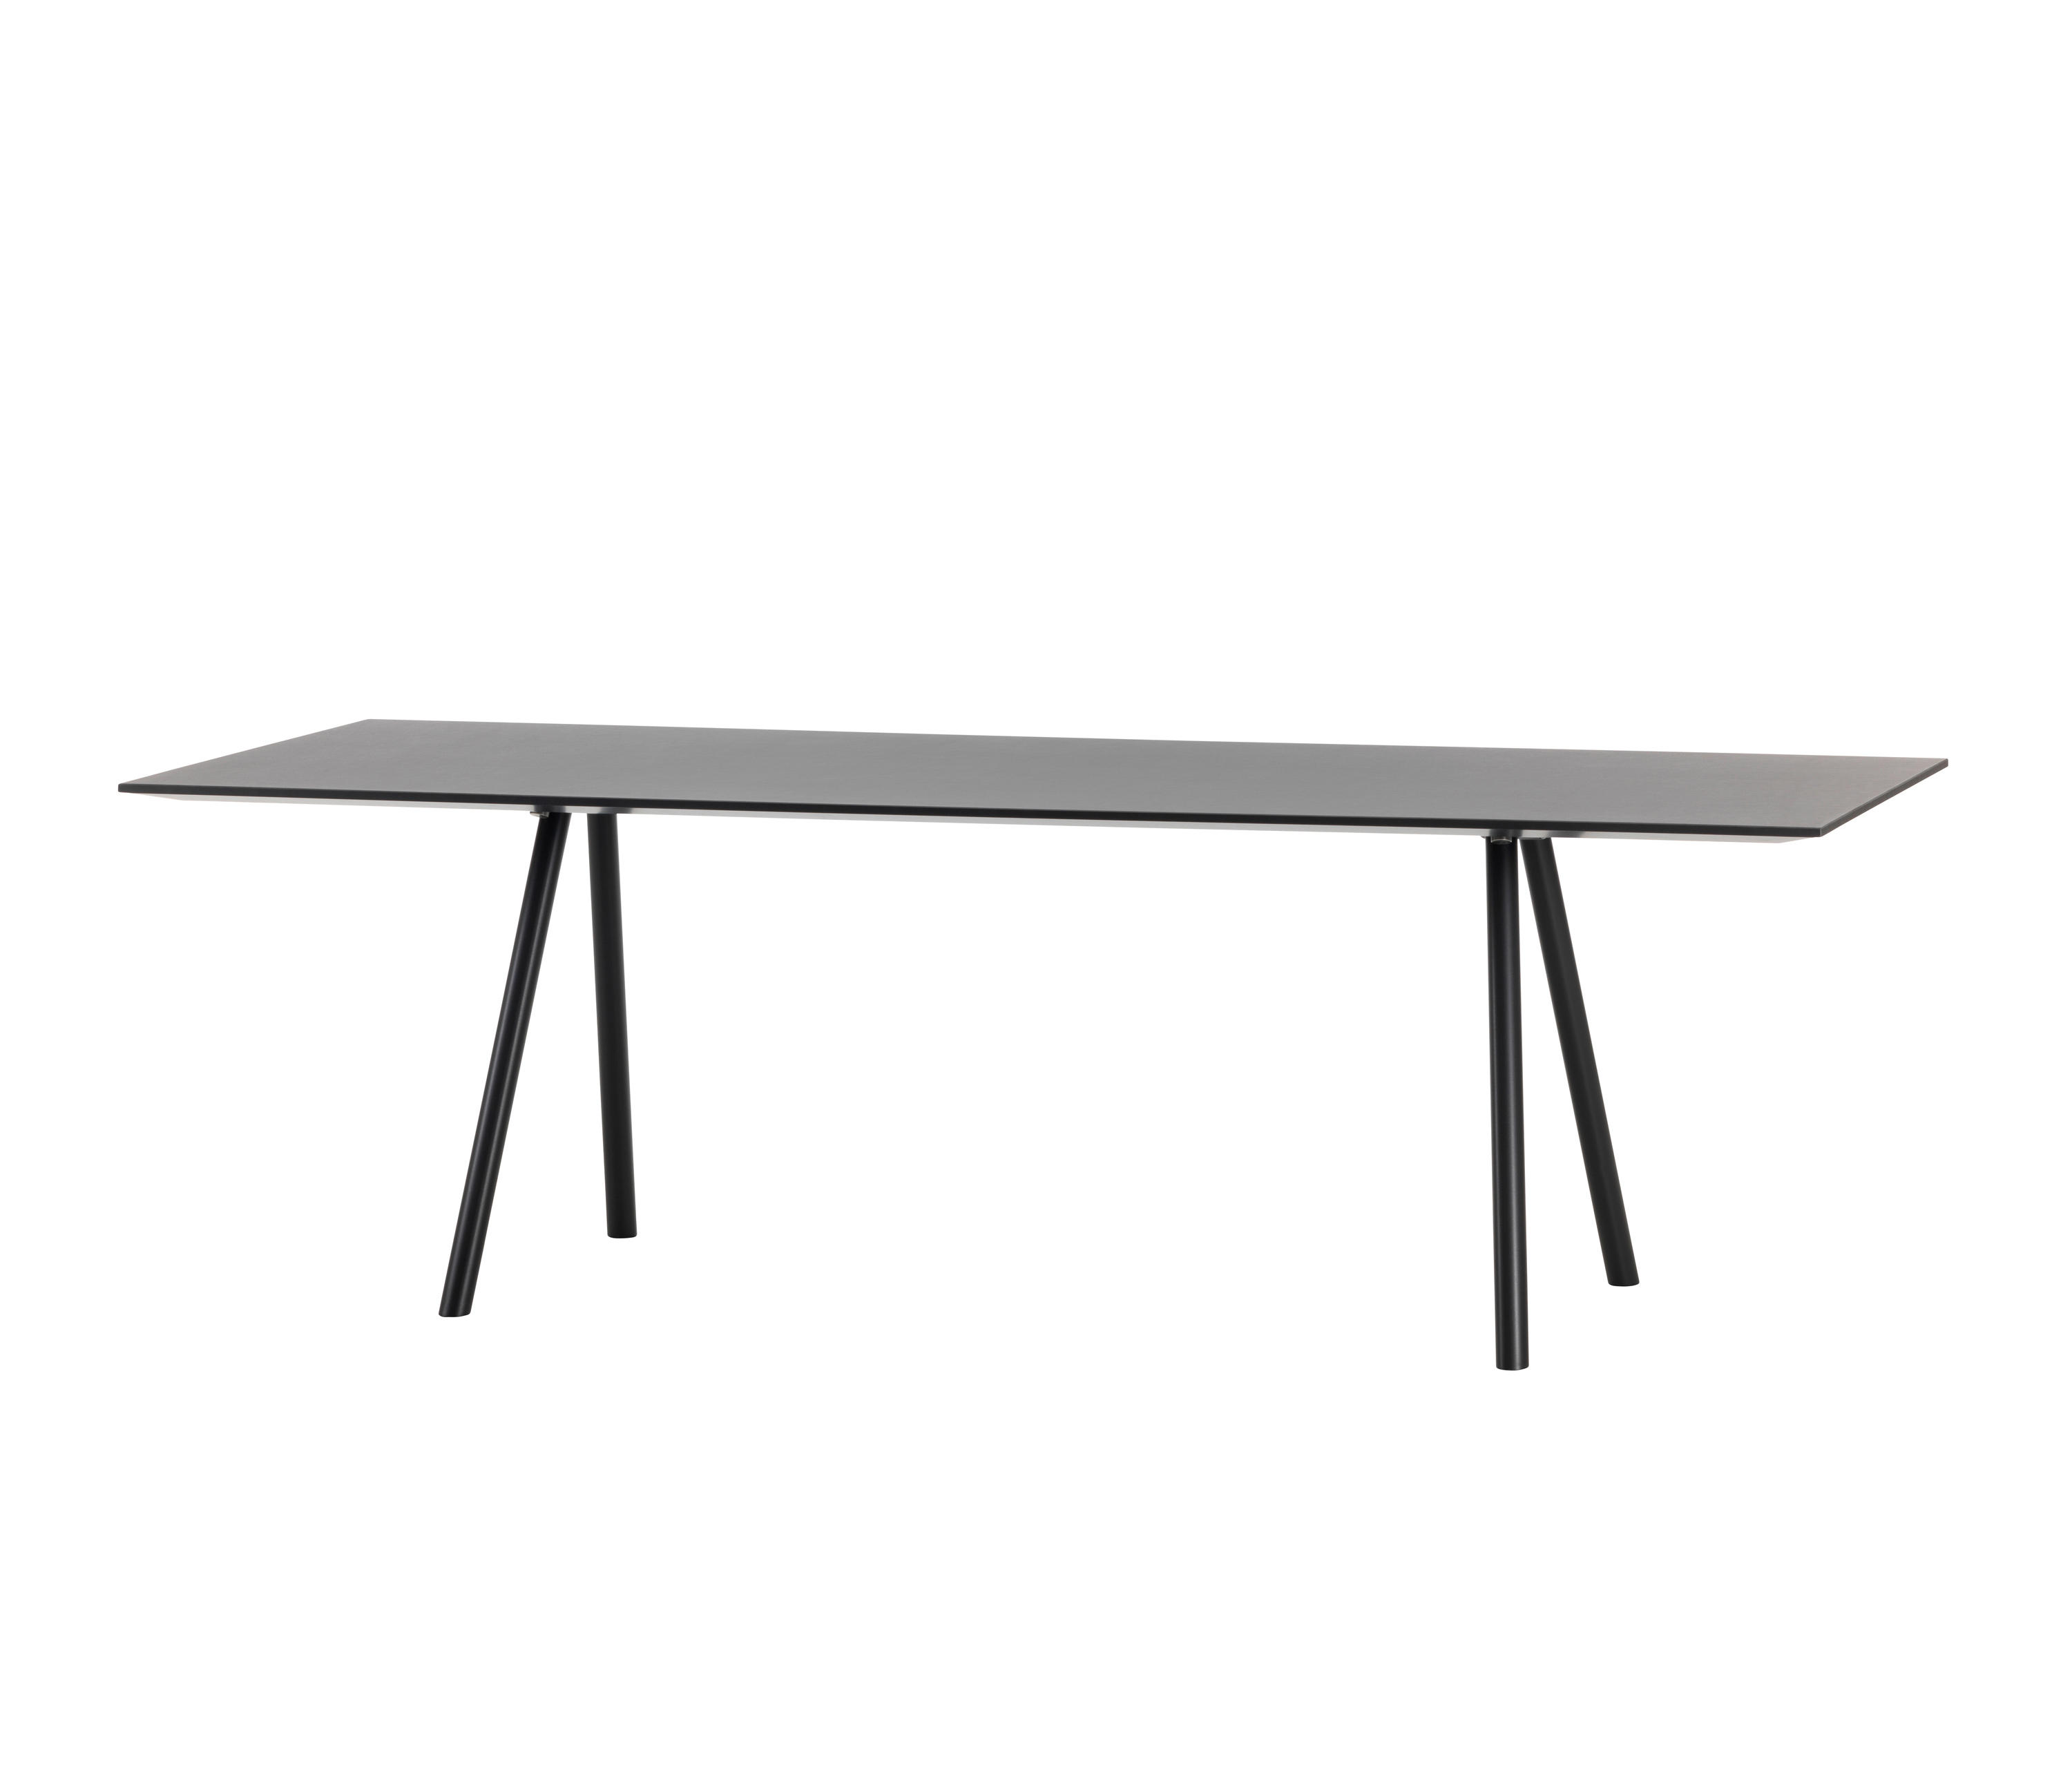 a table dining tables from vitra architonic. Black Bedroom Furniture Sets. Home Design Ideas